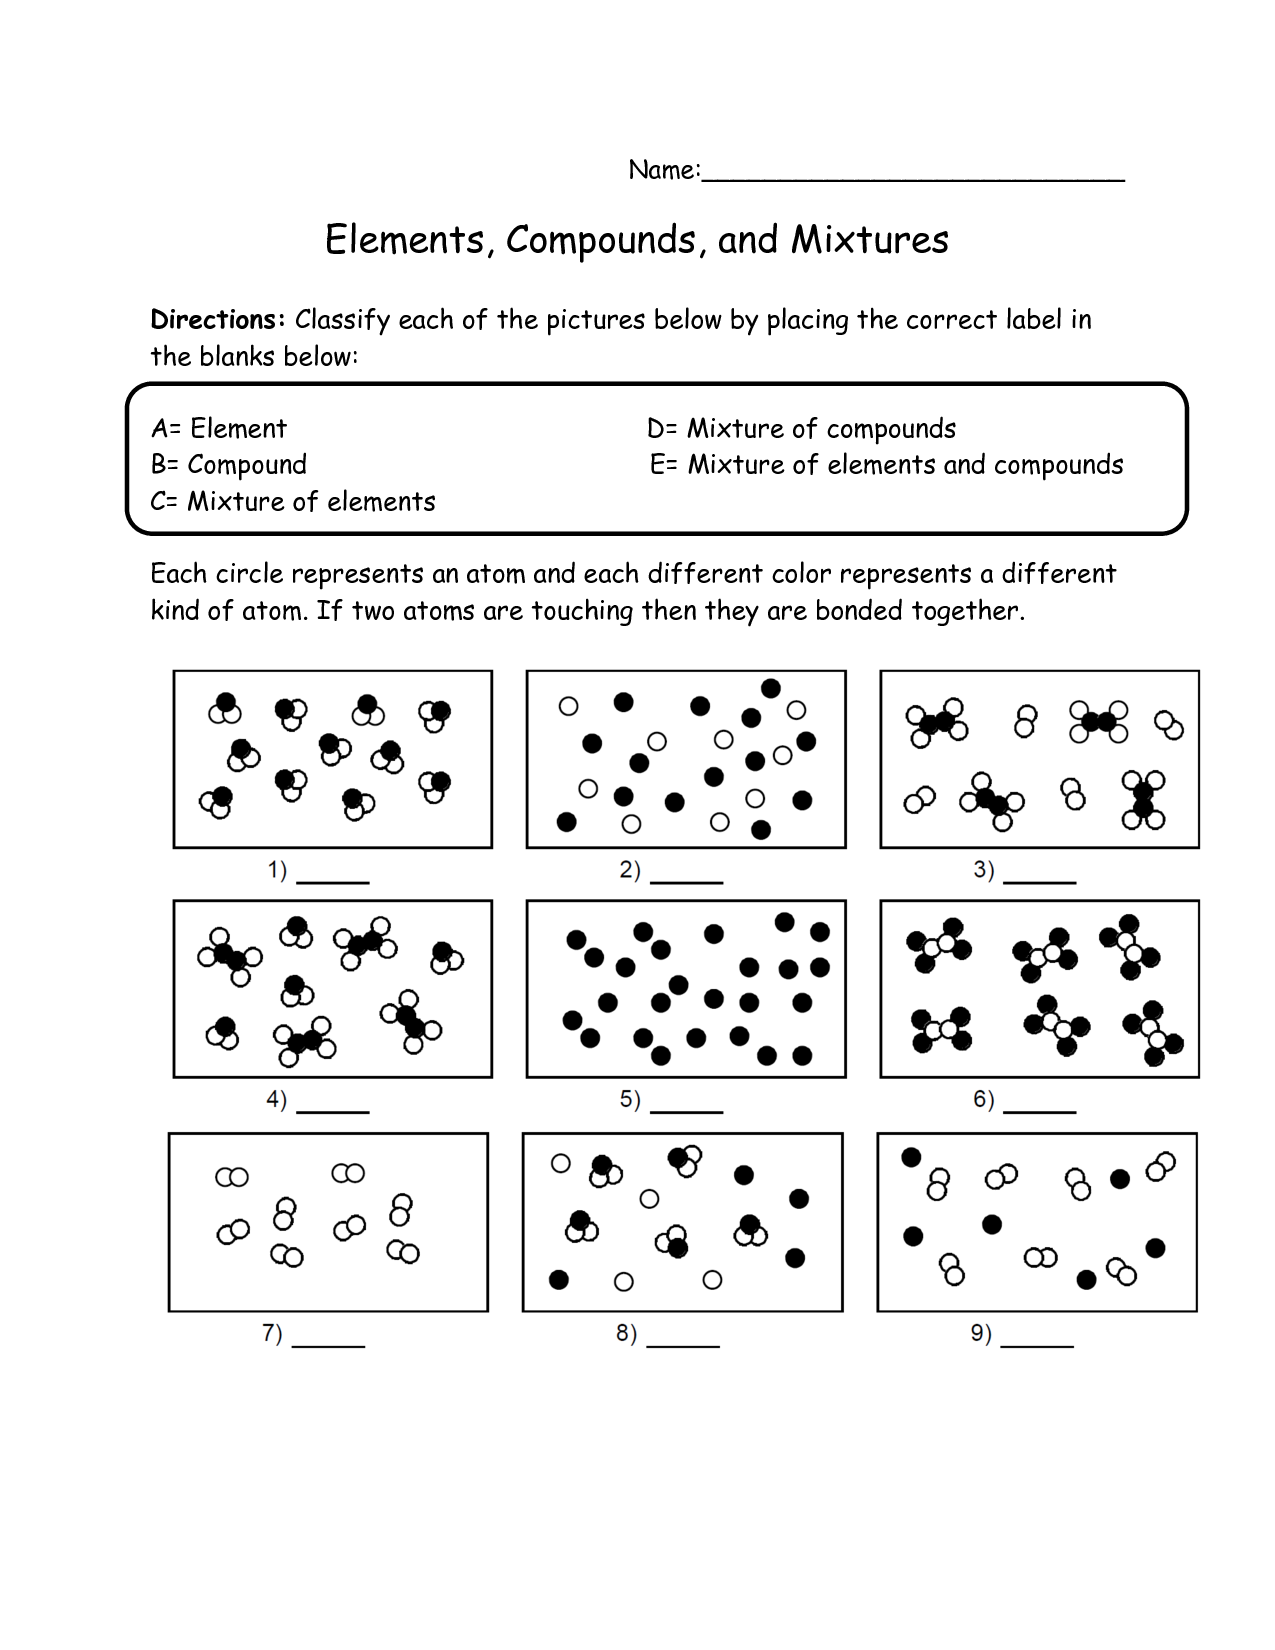 Printables Mixtures Worksheet elements compounds mixtures worksheet plustheapp element compound or mixture chapter 2 3 png